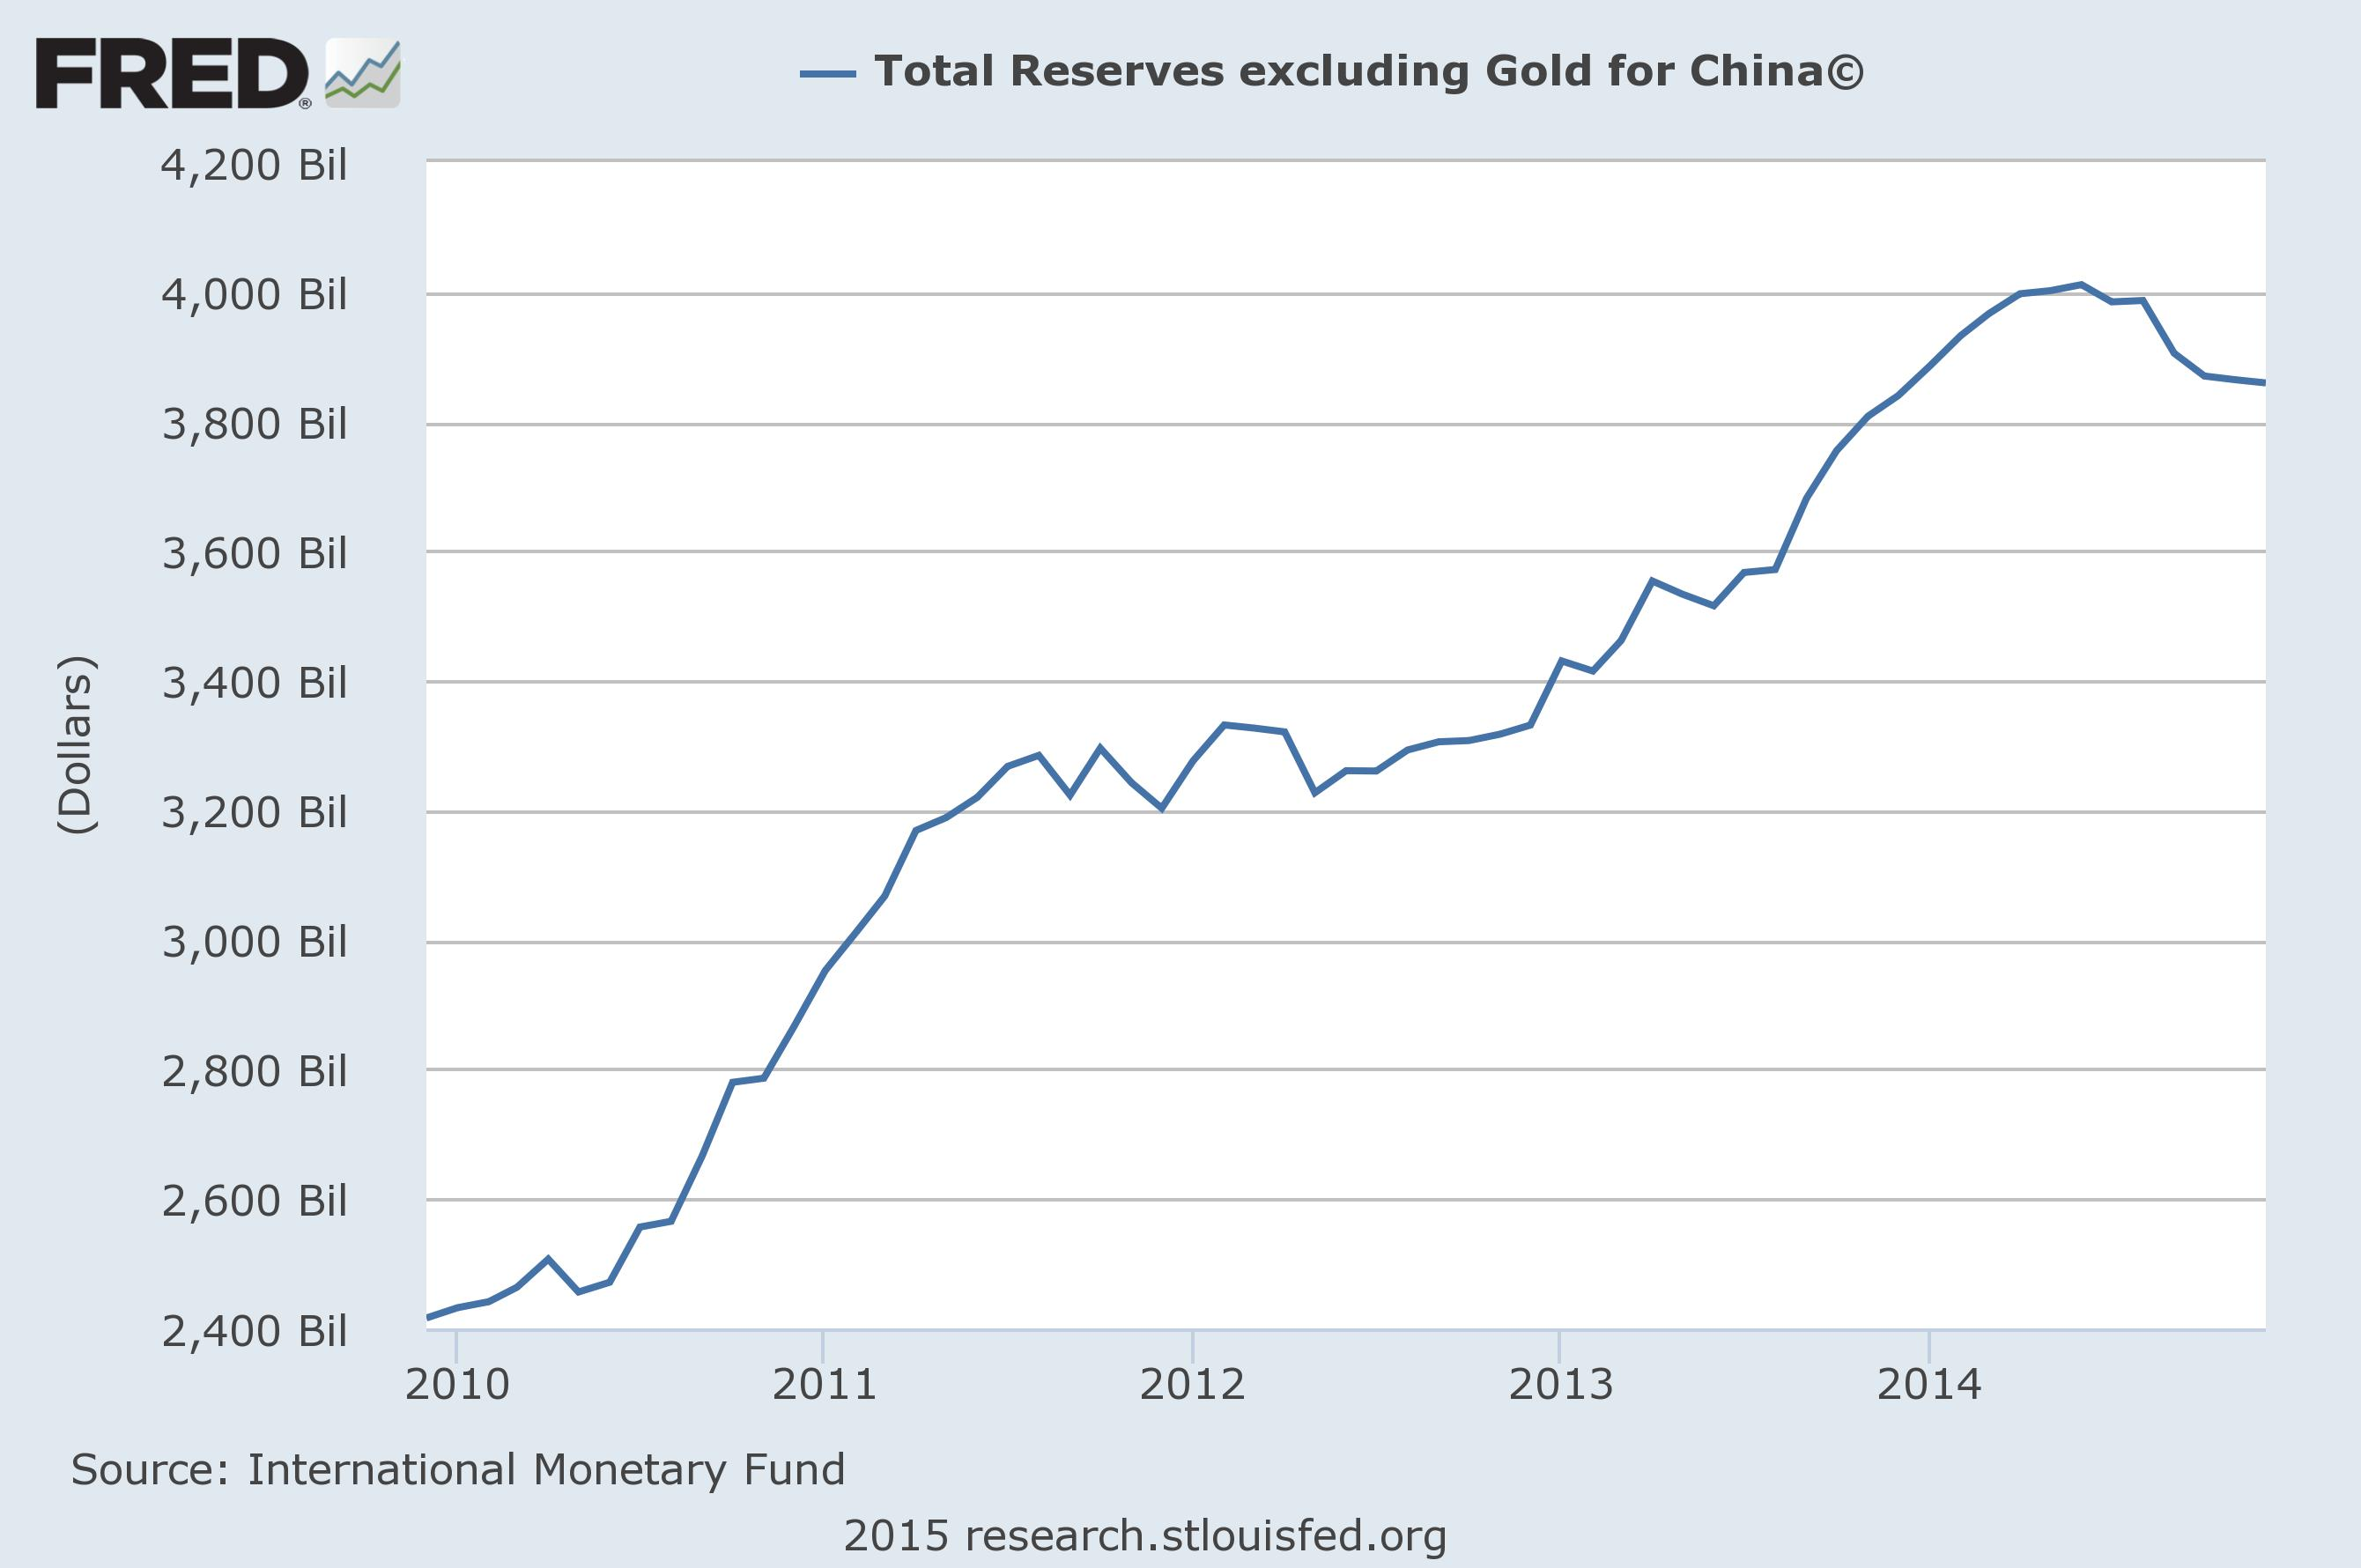 Total Reserves China excluding gold